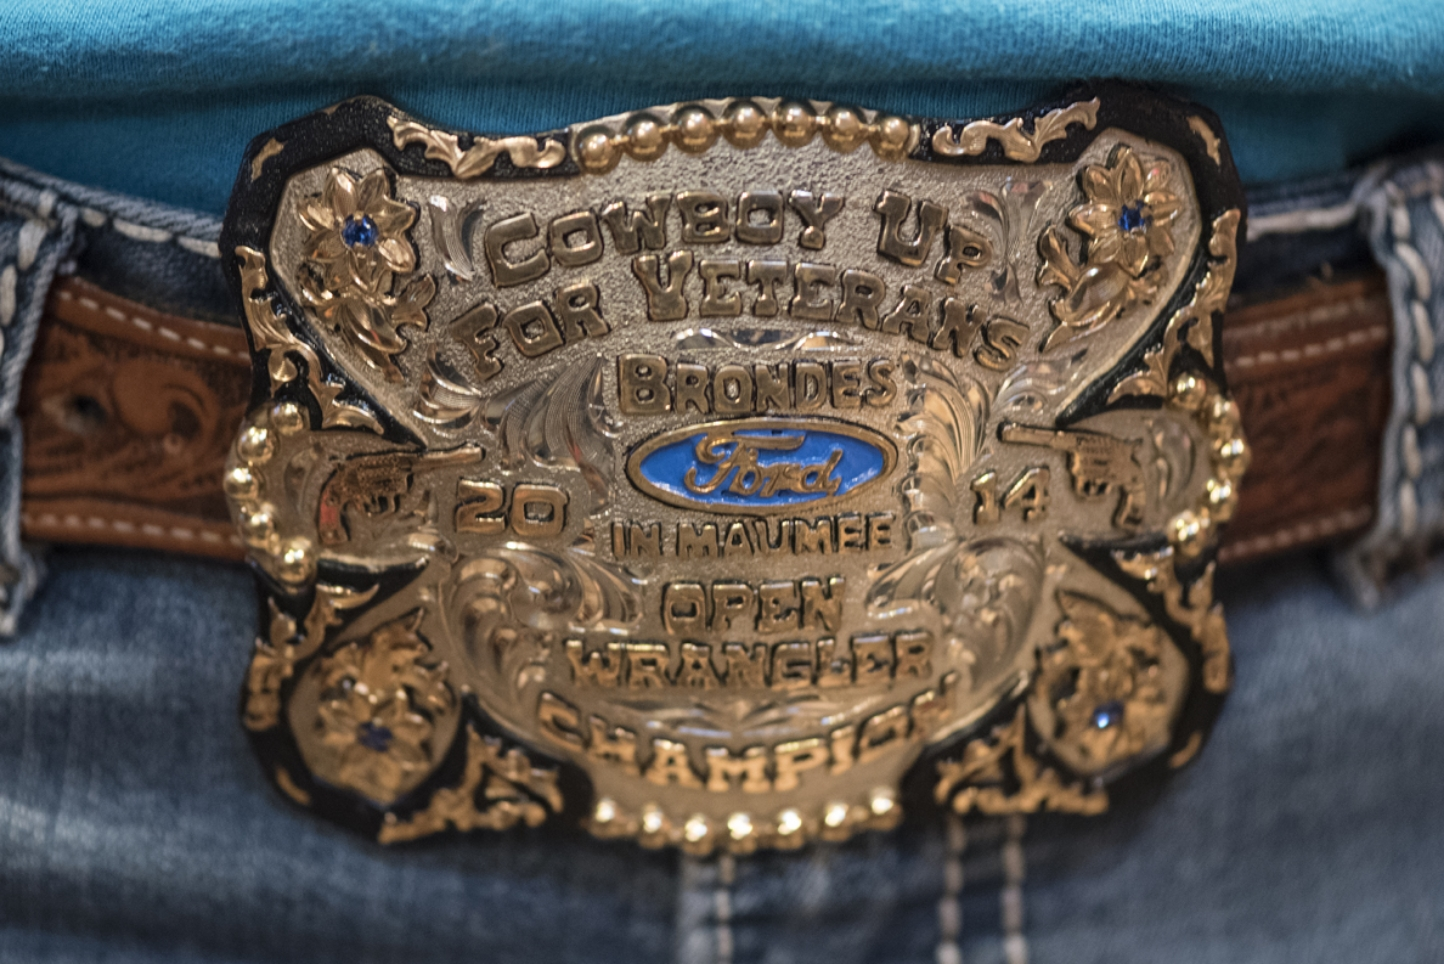 Ally Schreiber wears a belt buckle that she won at the 2014 Cowboy Up For Veterans shootout.